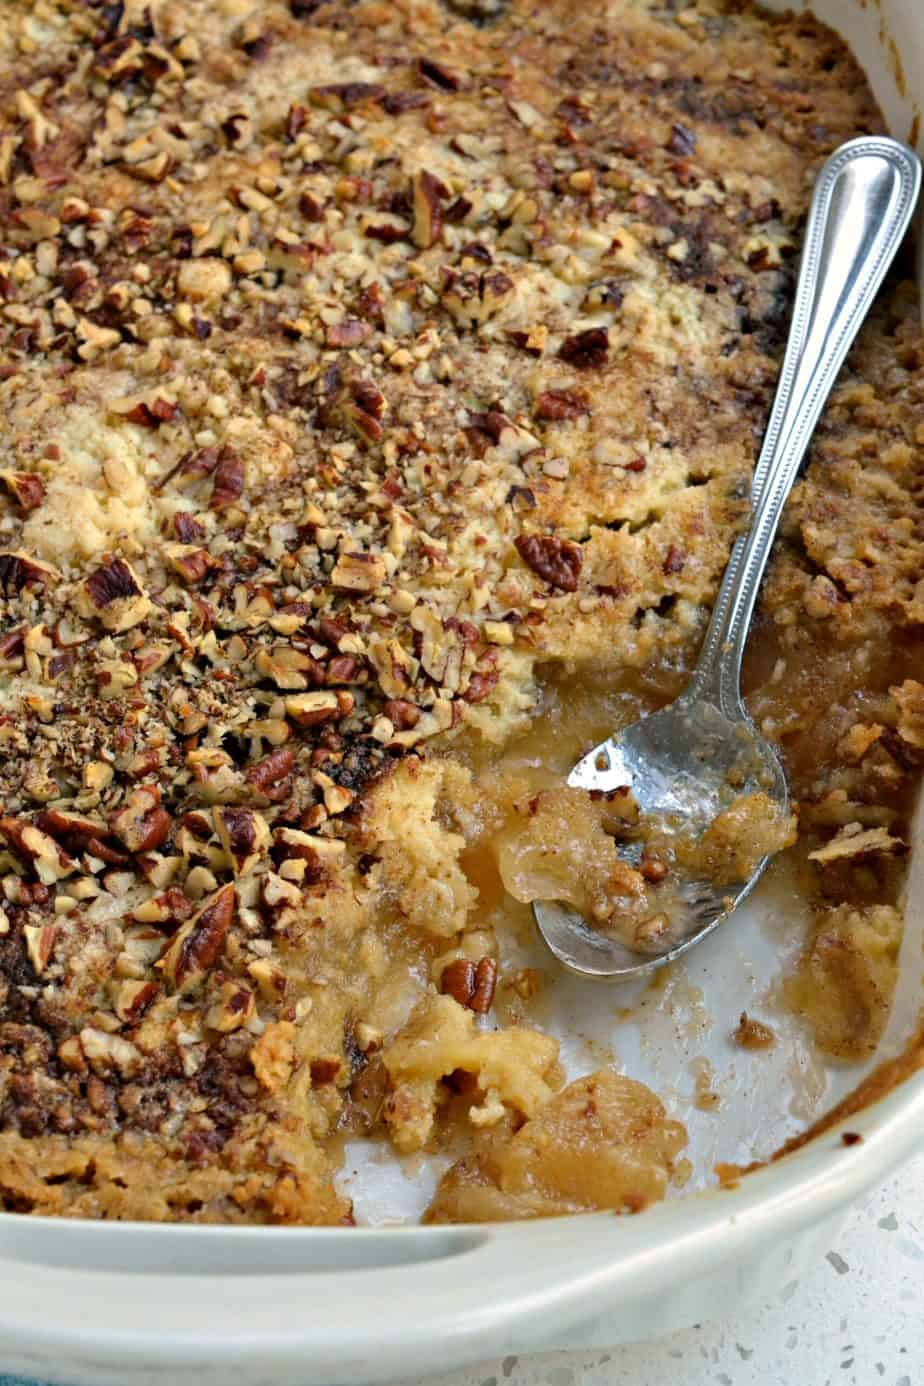 This super quick and easy scrumptious Apple Dump Cake is sure to please all of the apple lovers in your life.